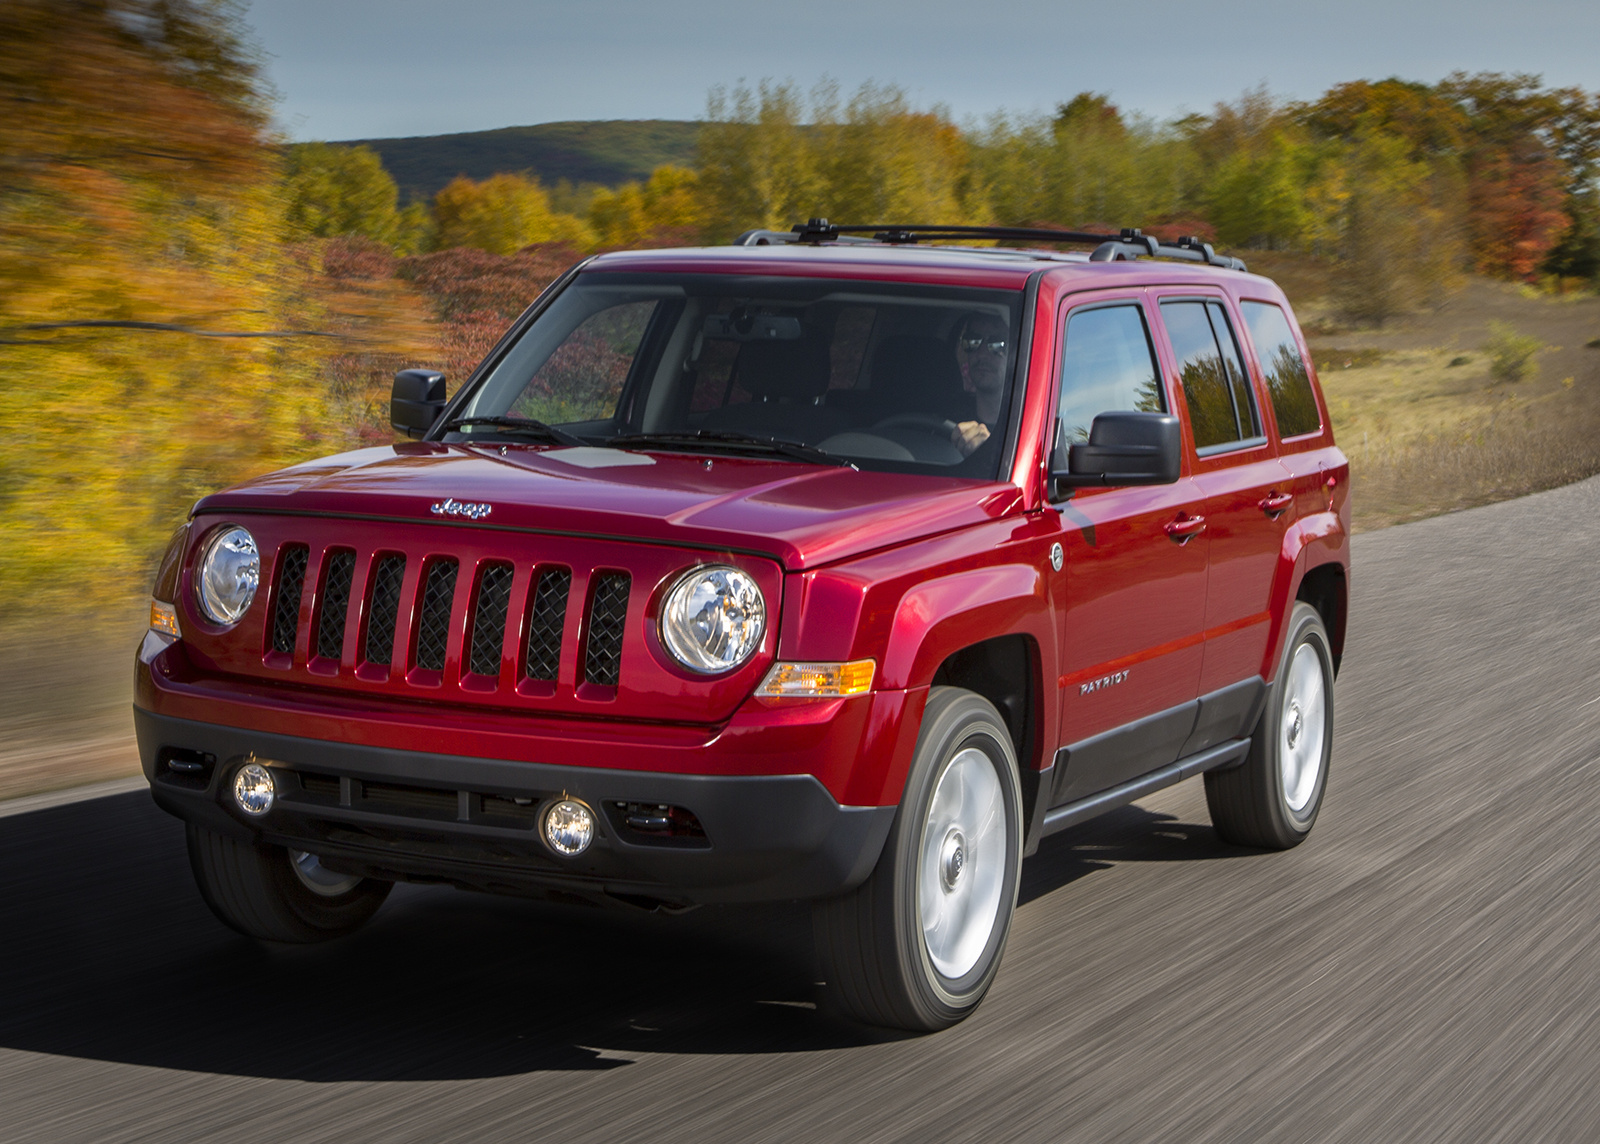 2016 Jeep Patriot - Review - CarGurus